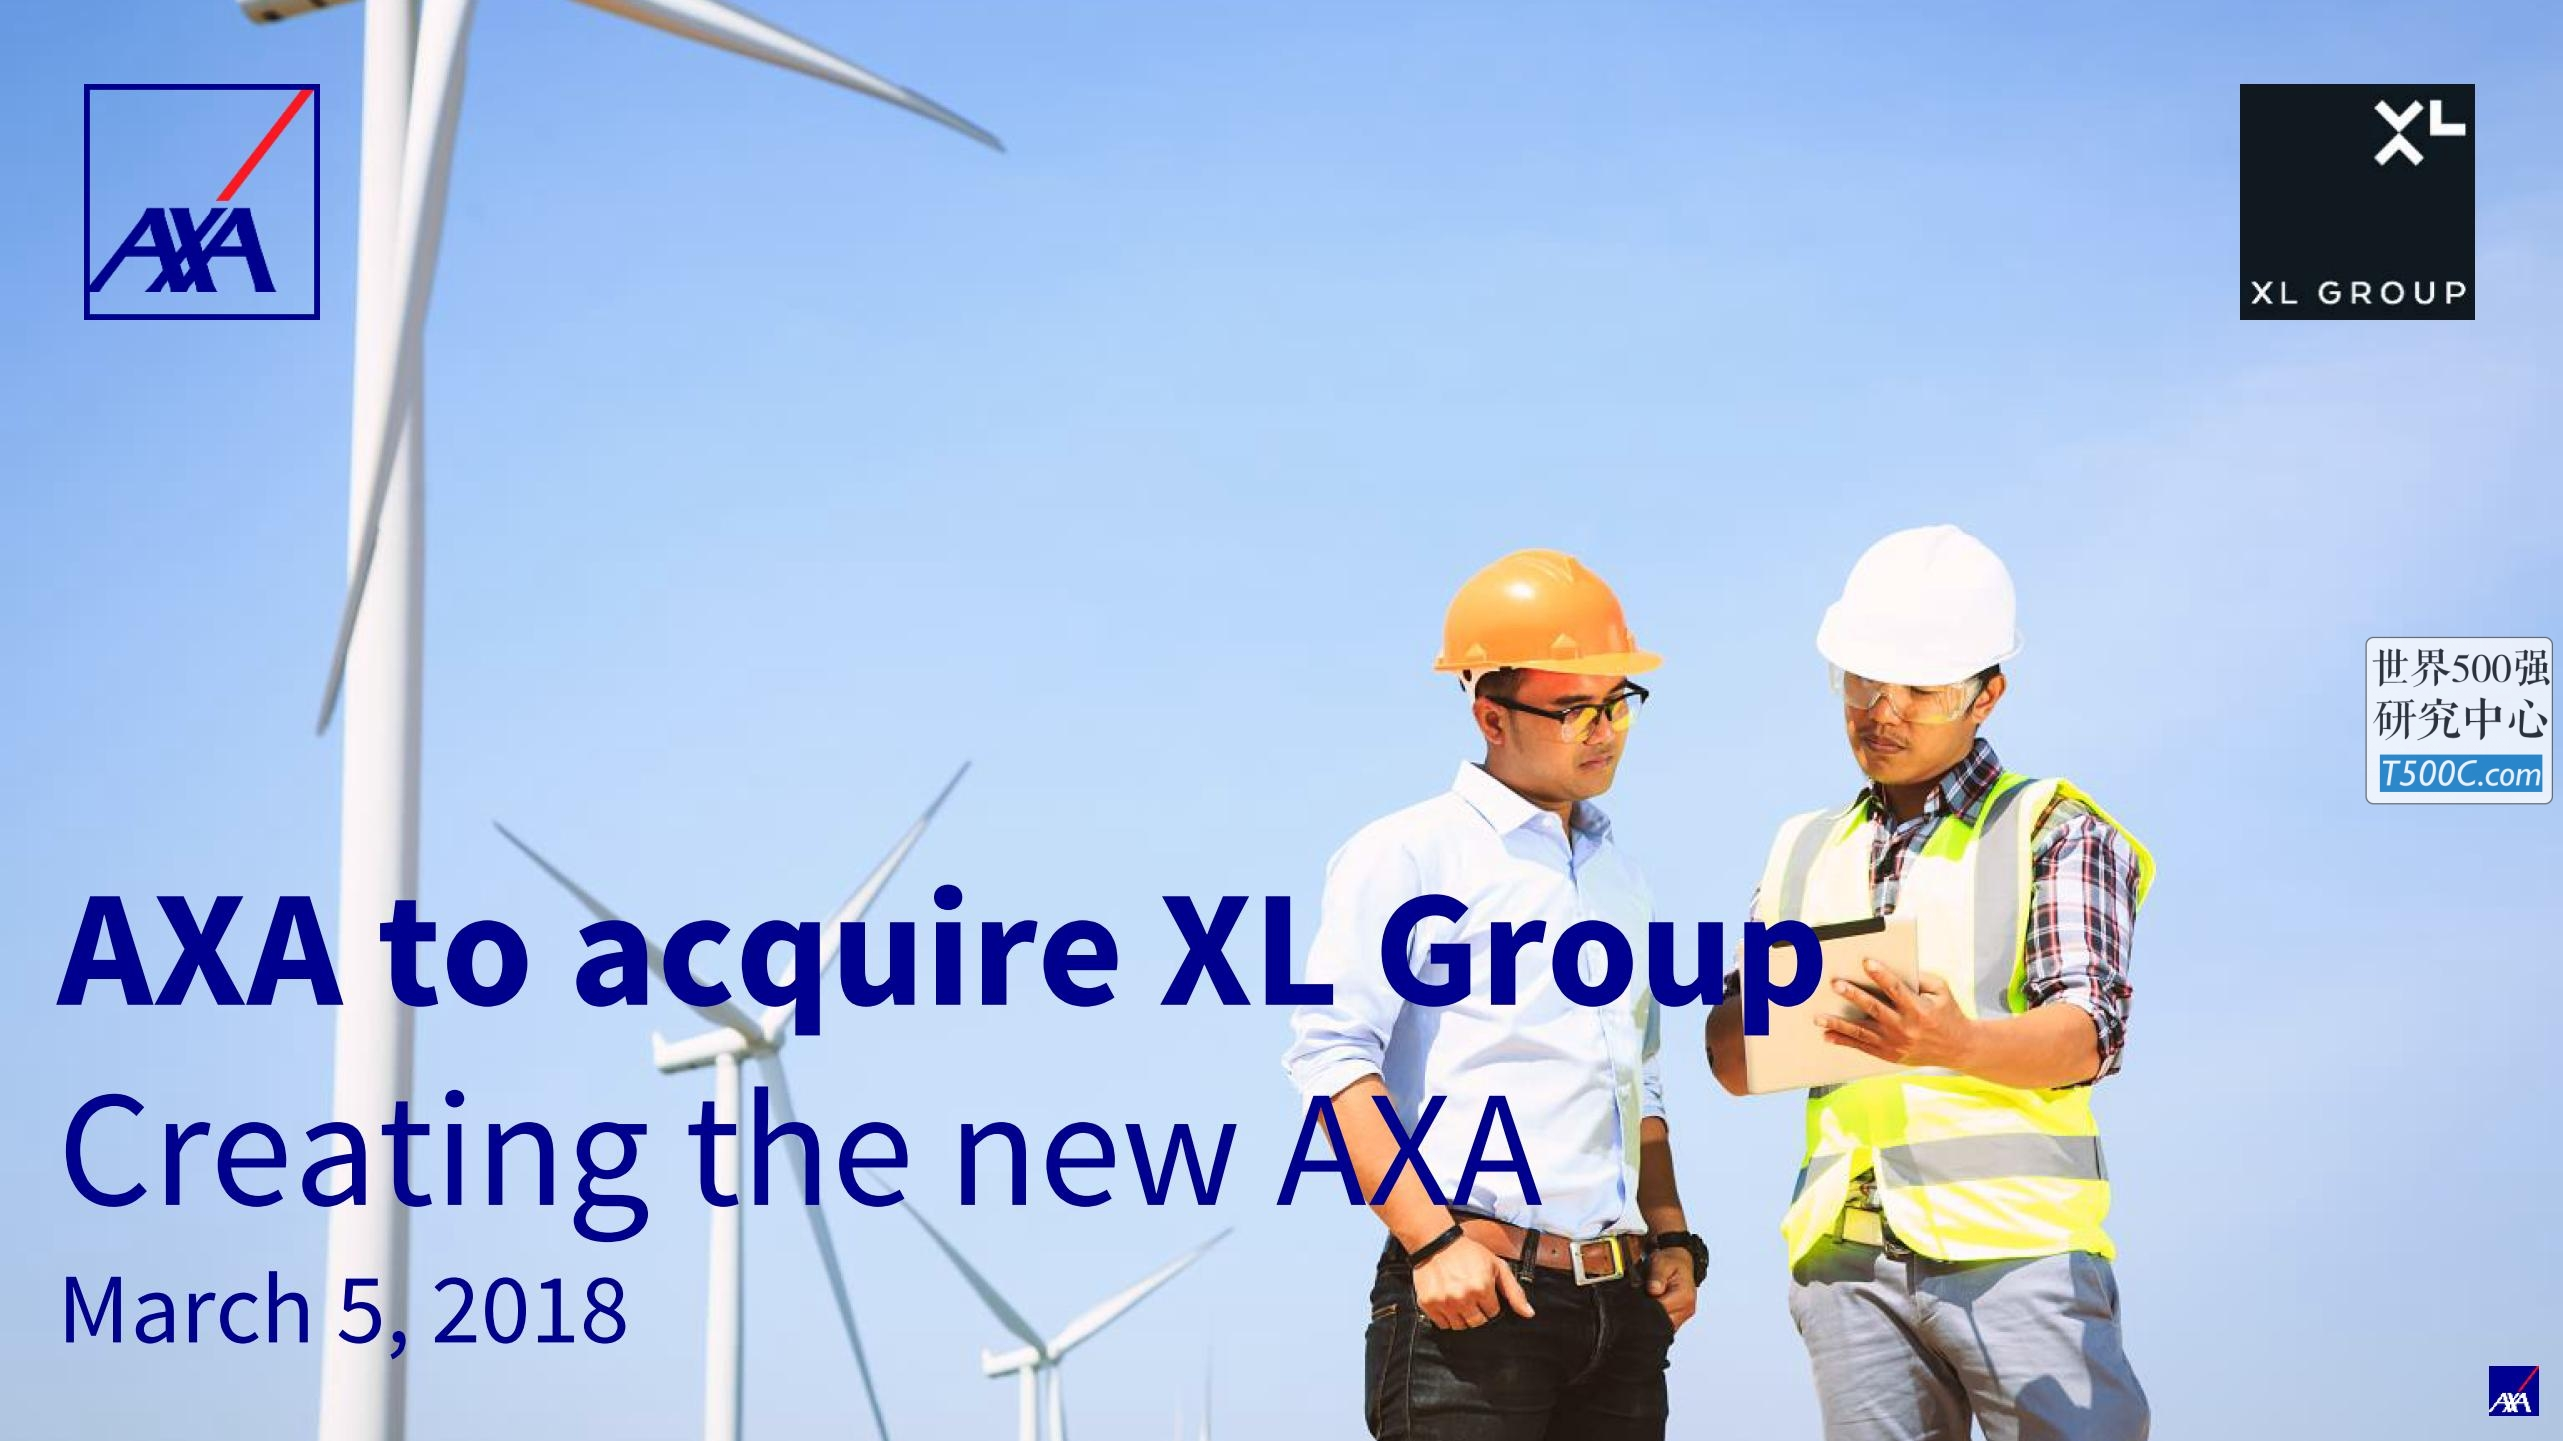 安盛保险AXA_PPT样式_2018_T500C.com_AXA to acquire XL Group.pdf